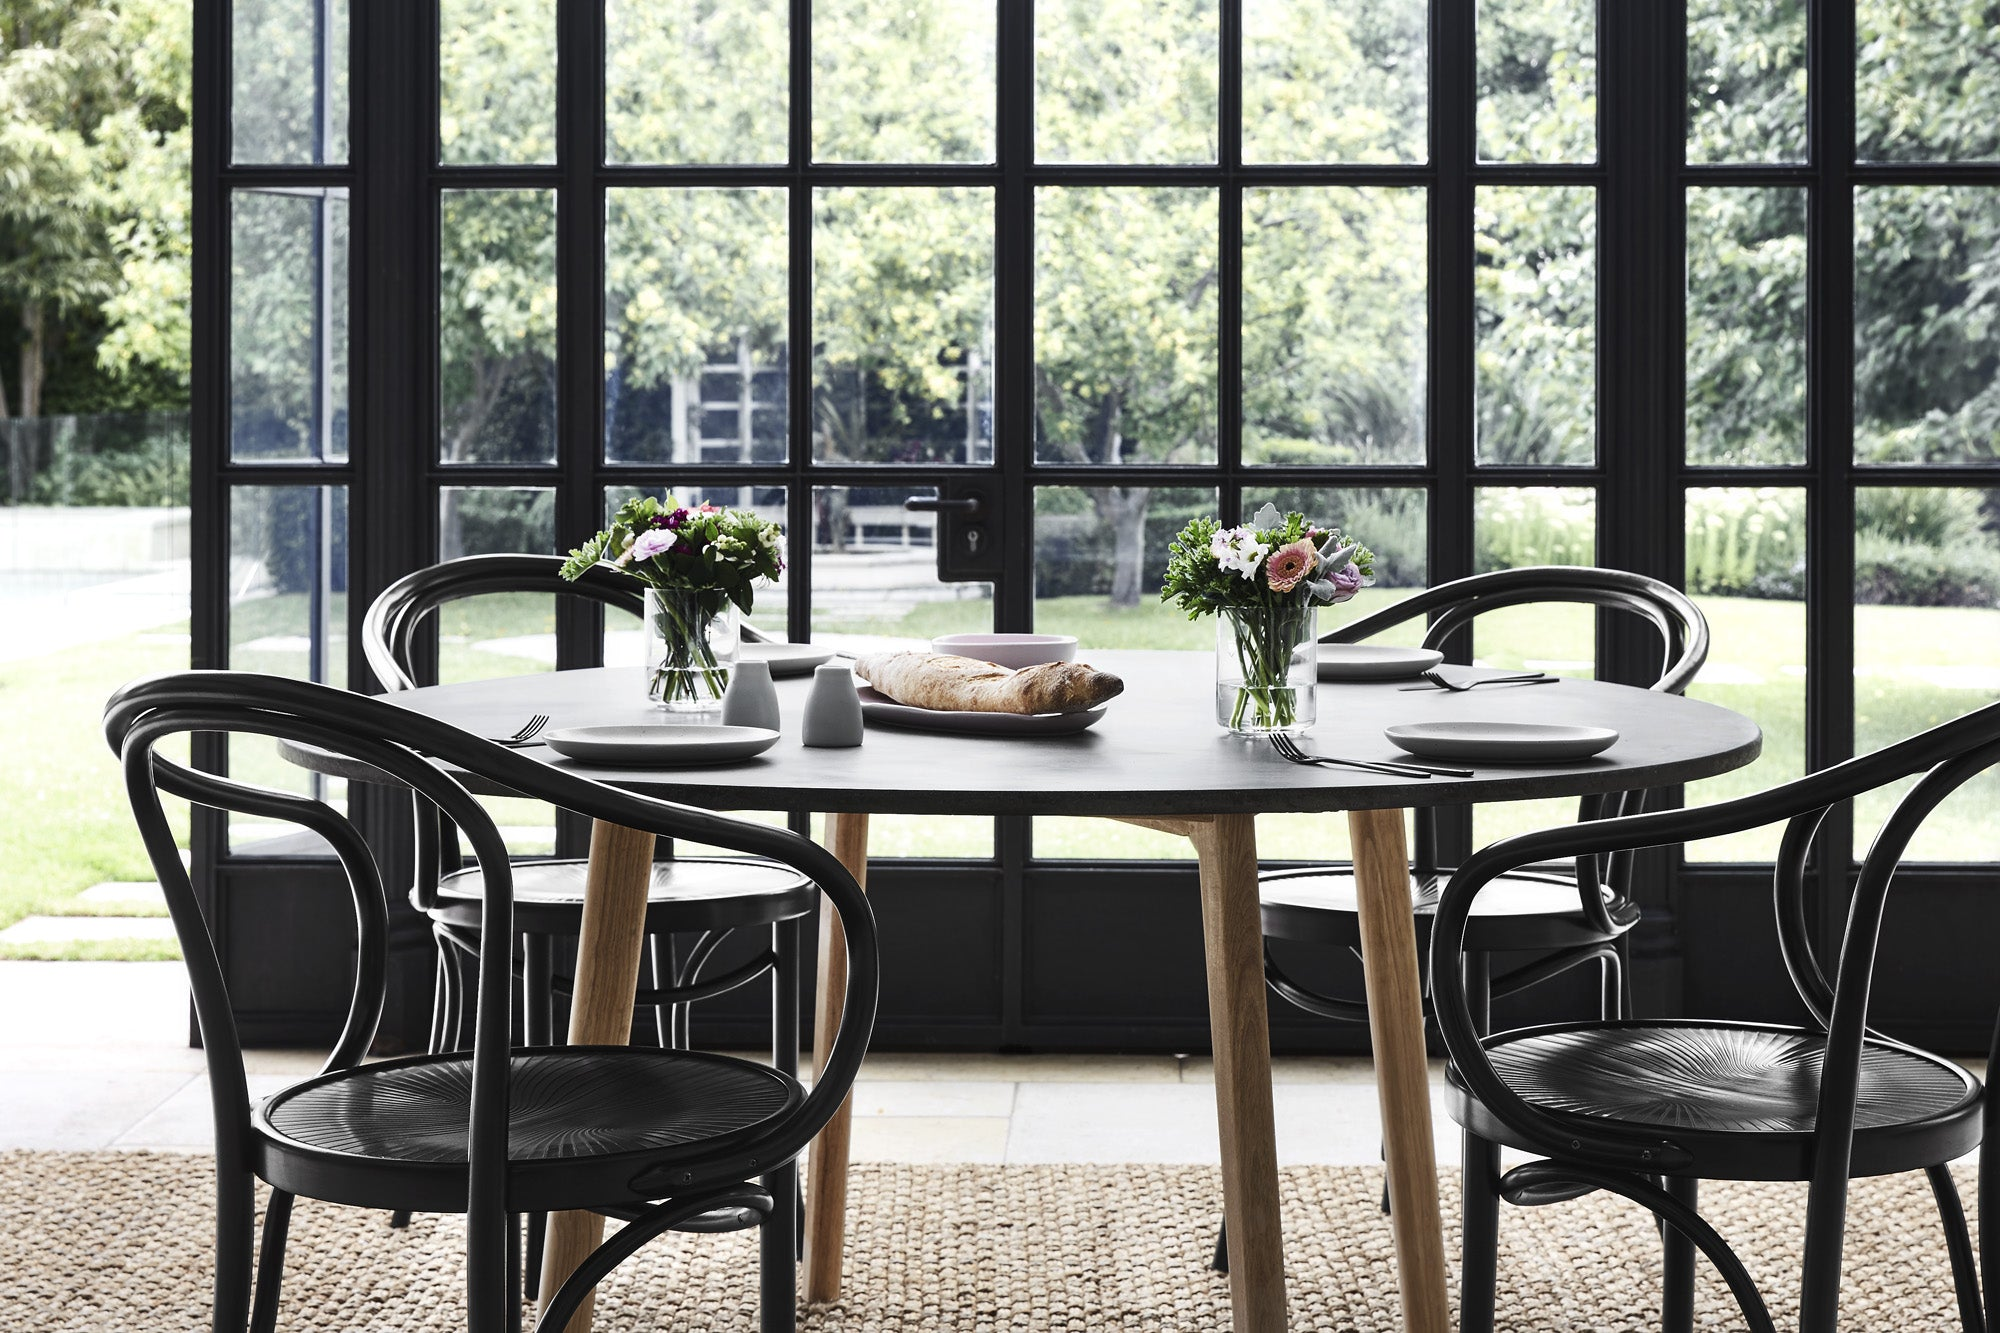 4 or 6-Seater Concrete Dining Table & Black Dining Chairs